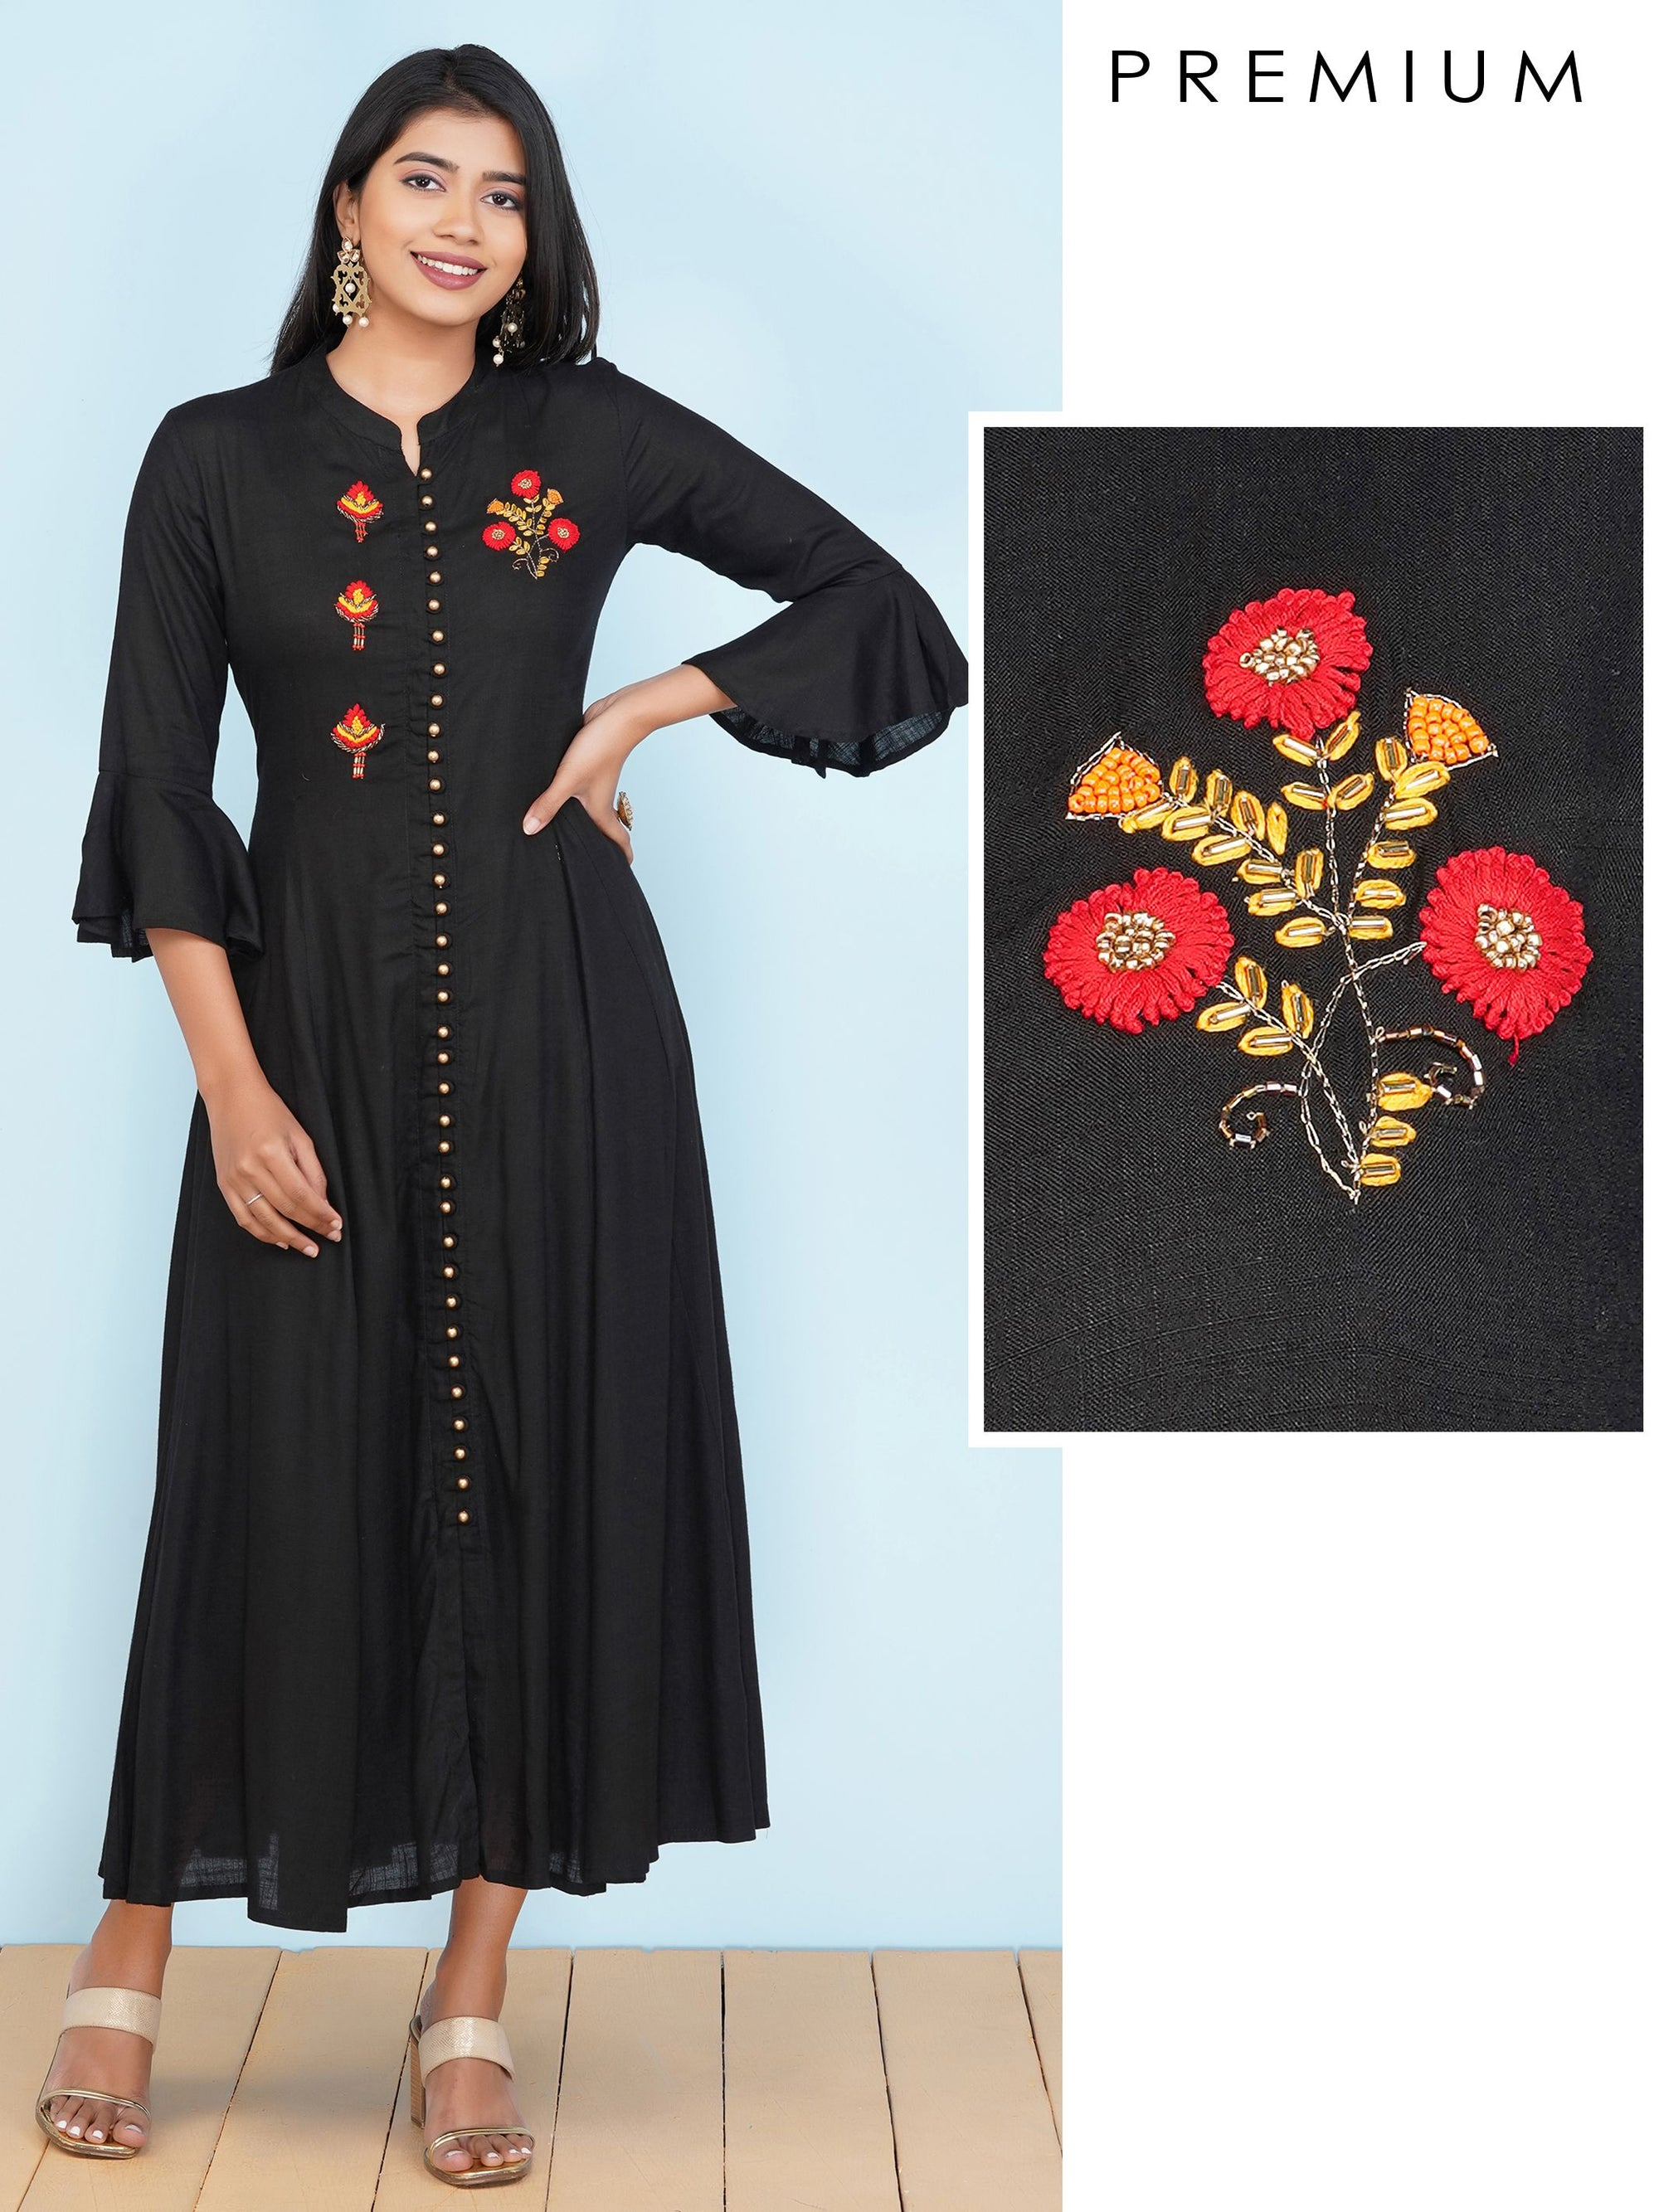 Embossed Embroidered & Cutdana Detailed Premium Kurti